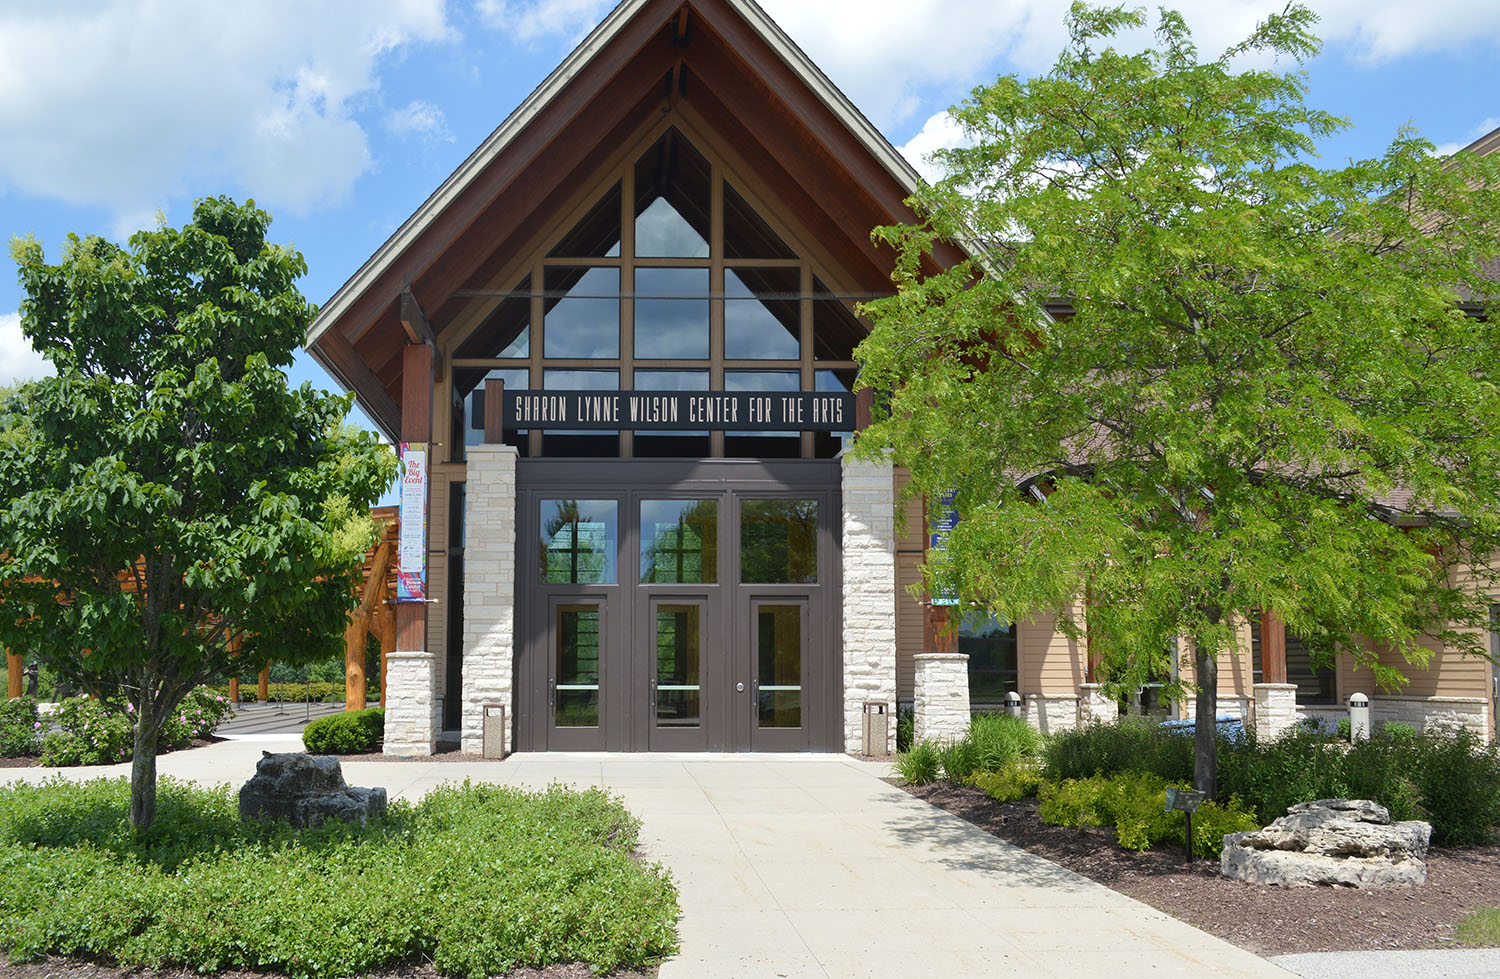 The Sharon Lynne Wilson Center for the Arts, located in Brookfield, provides a wide range of arts-orientated educational and recreational opportunities for its area community members.